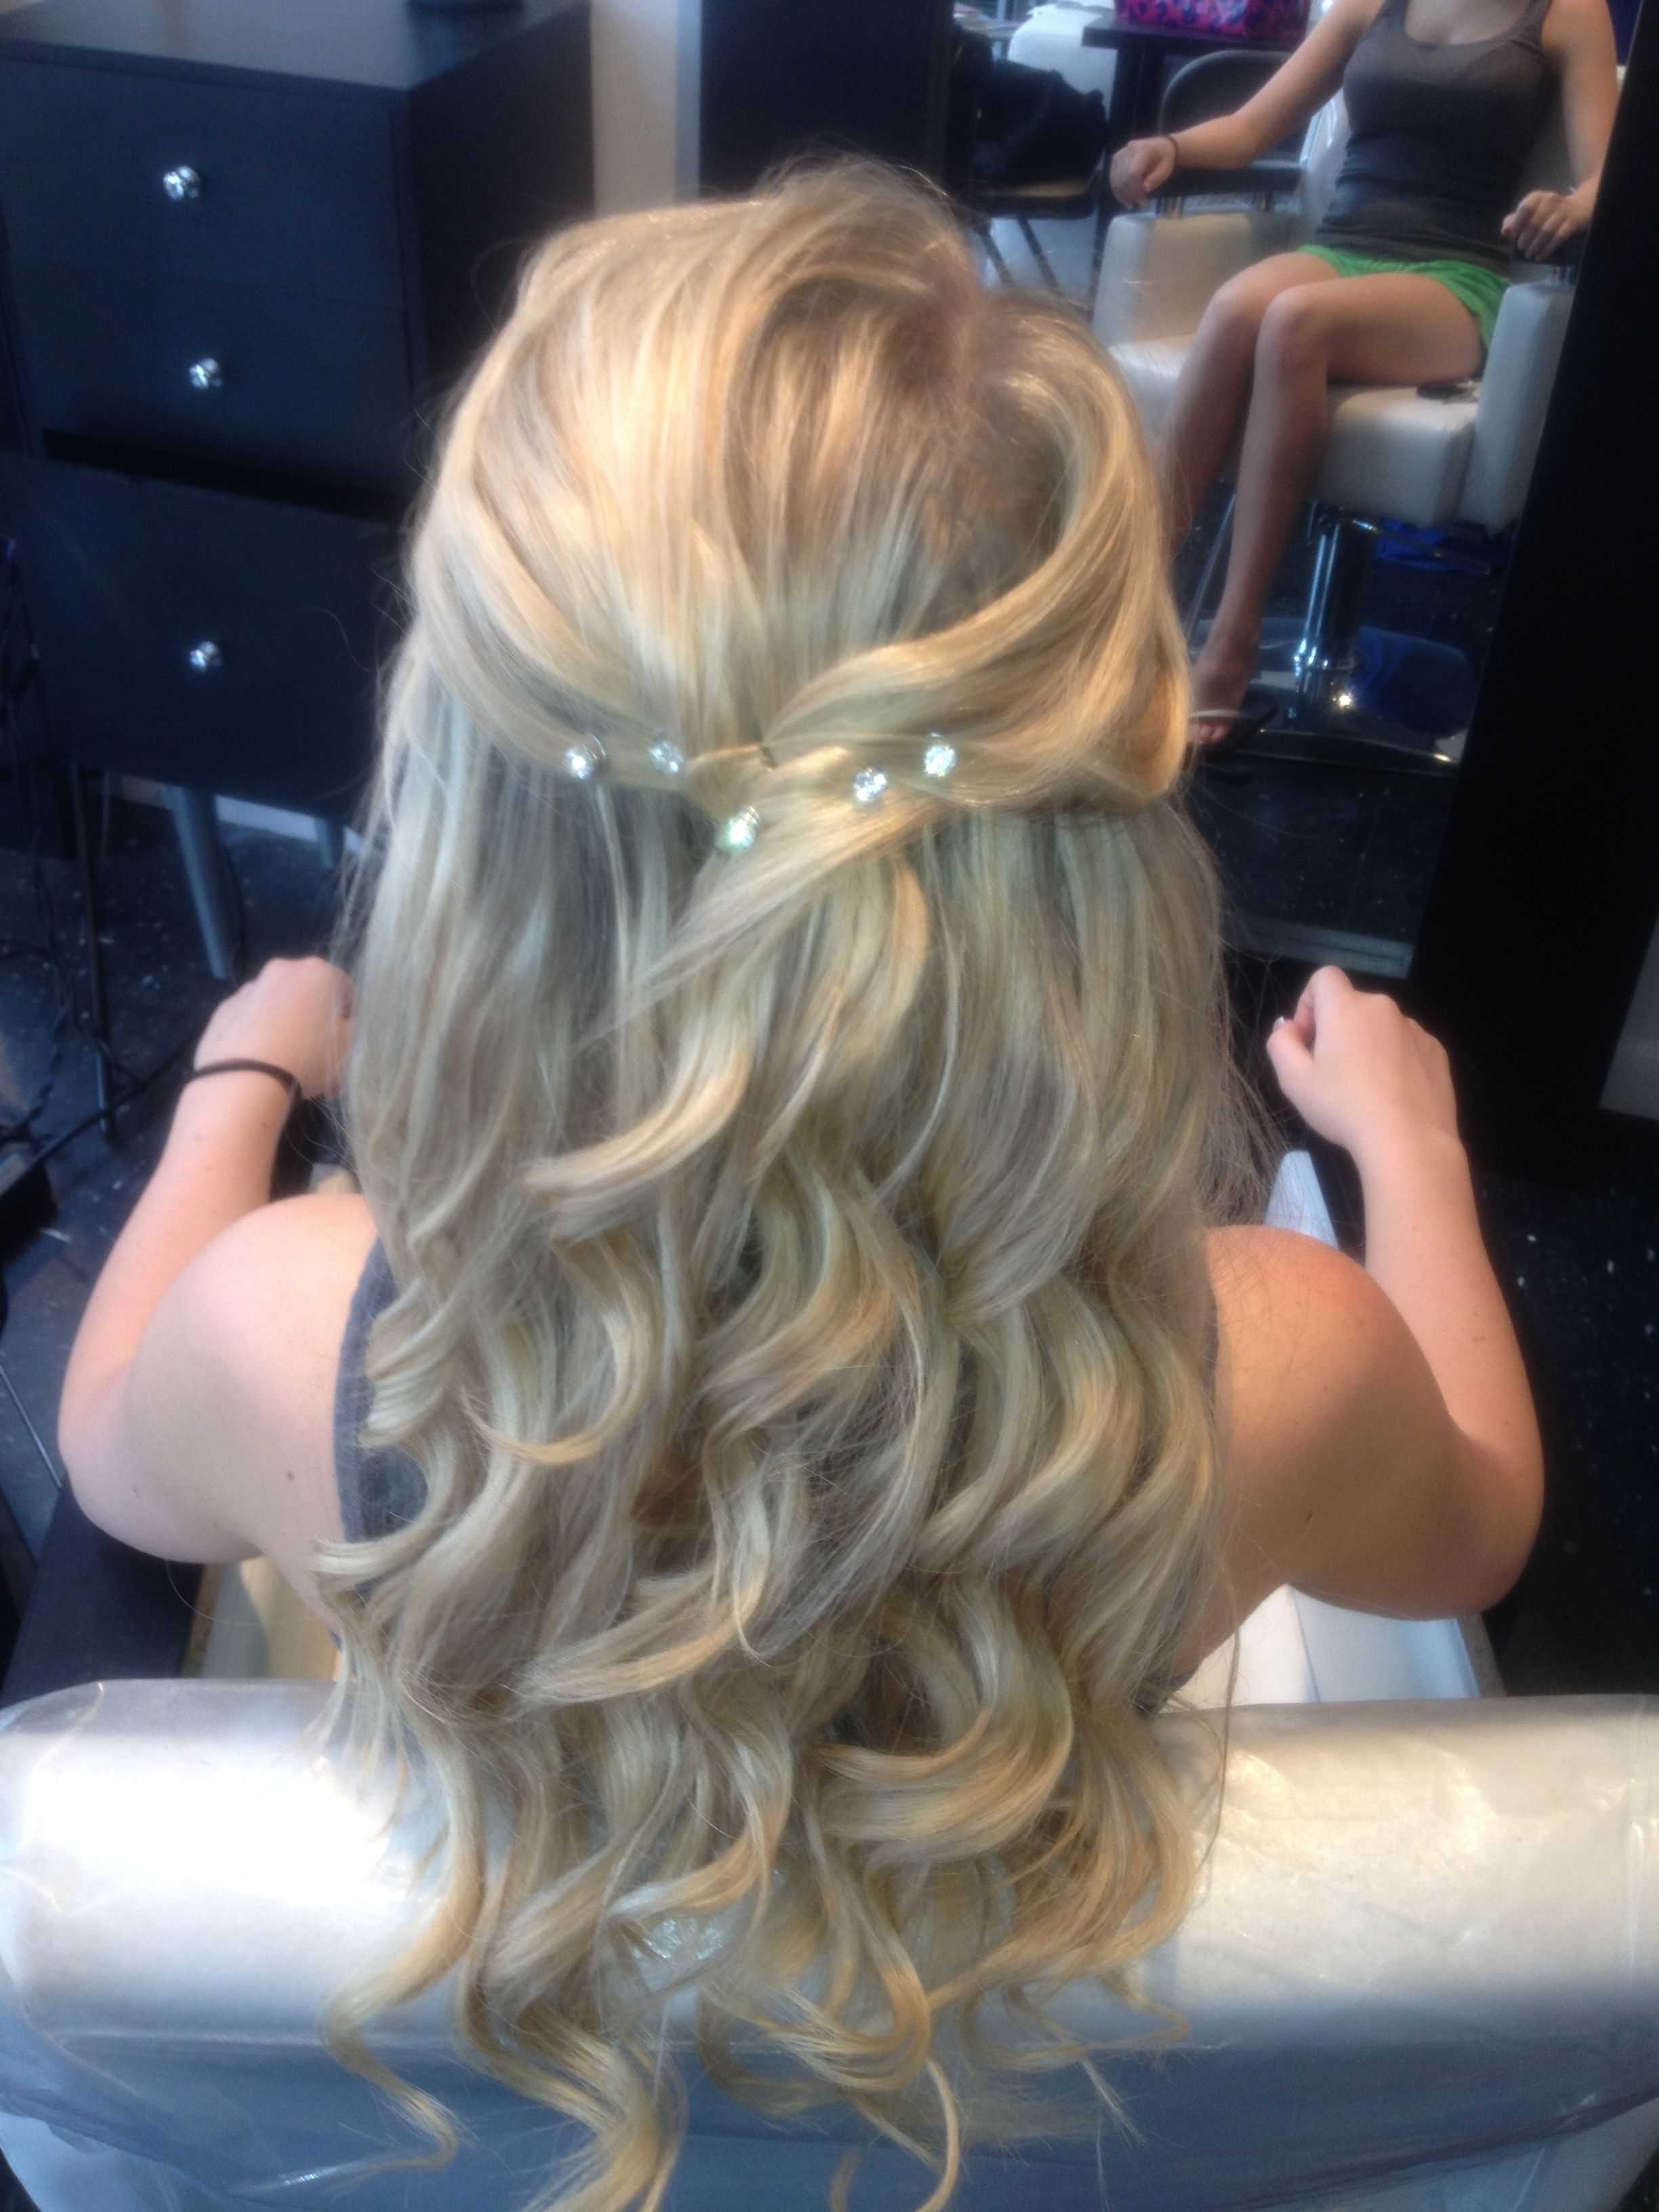 Newest Half Up Wedding Hairstyles With Jeweled Clip Throughout My Half Up Half Down Curled Prom Hair With Jewels (View 13 of 20)